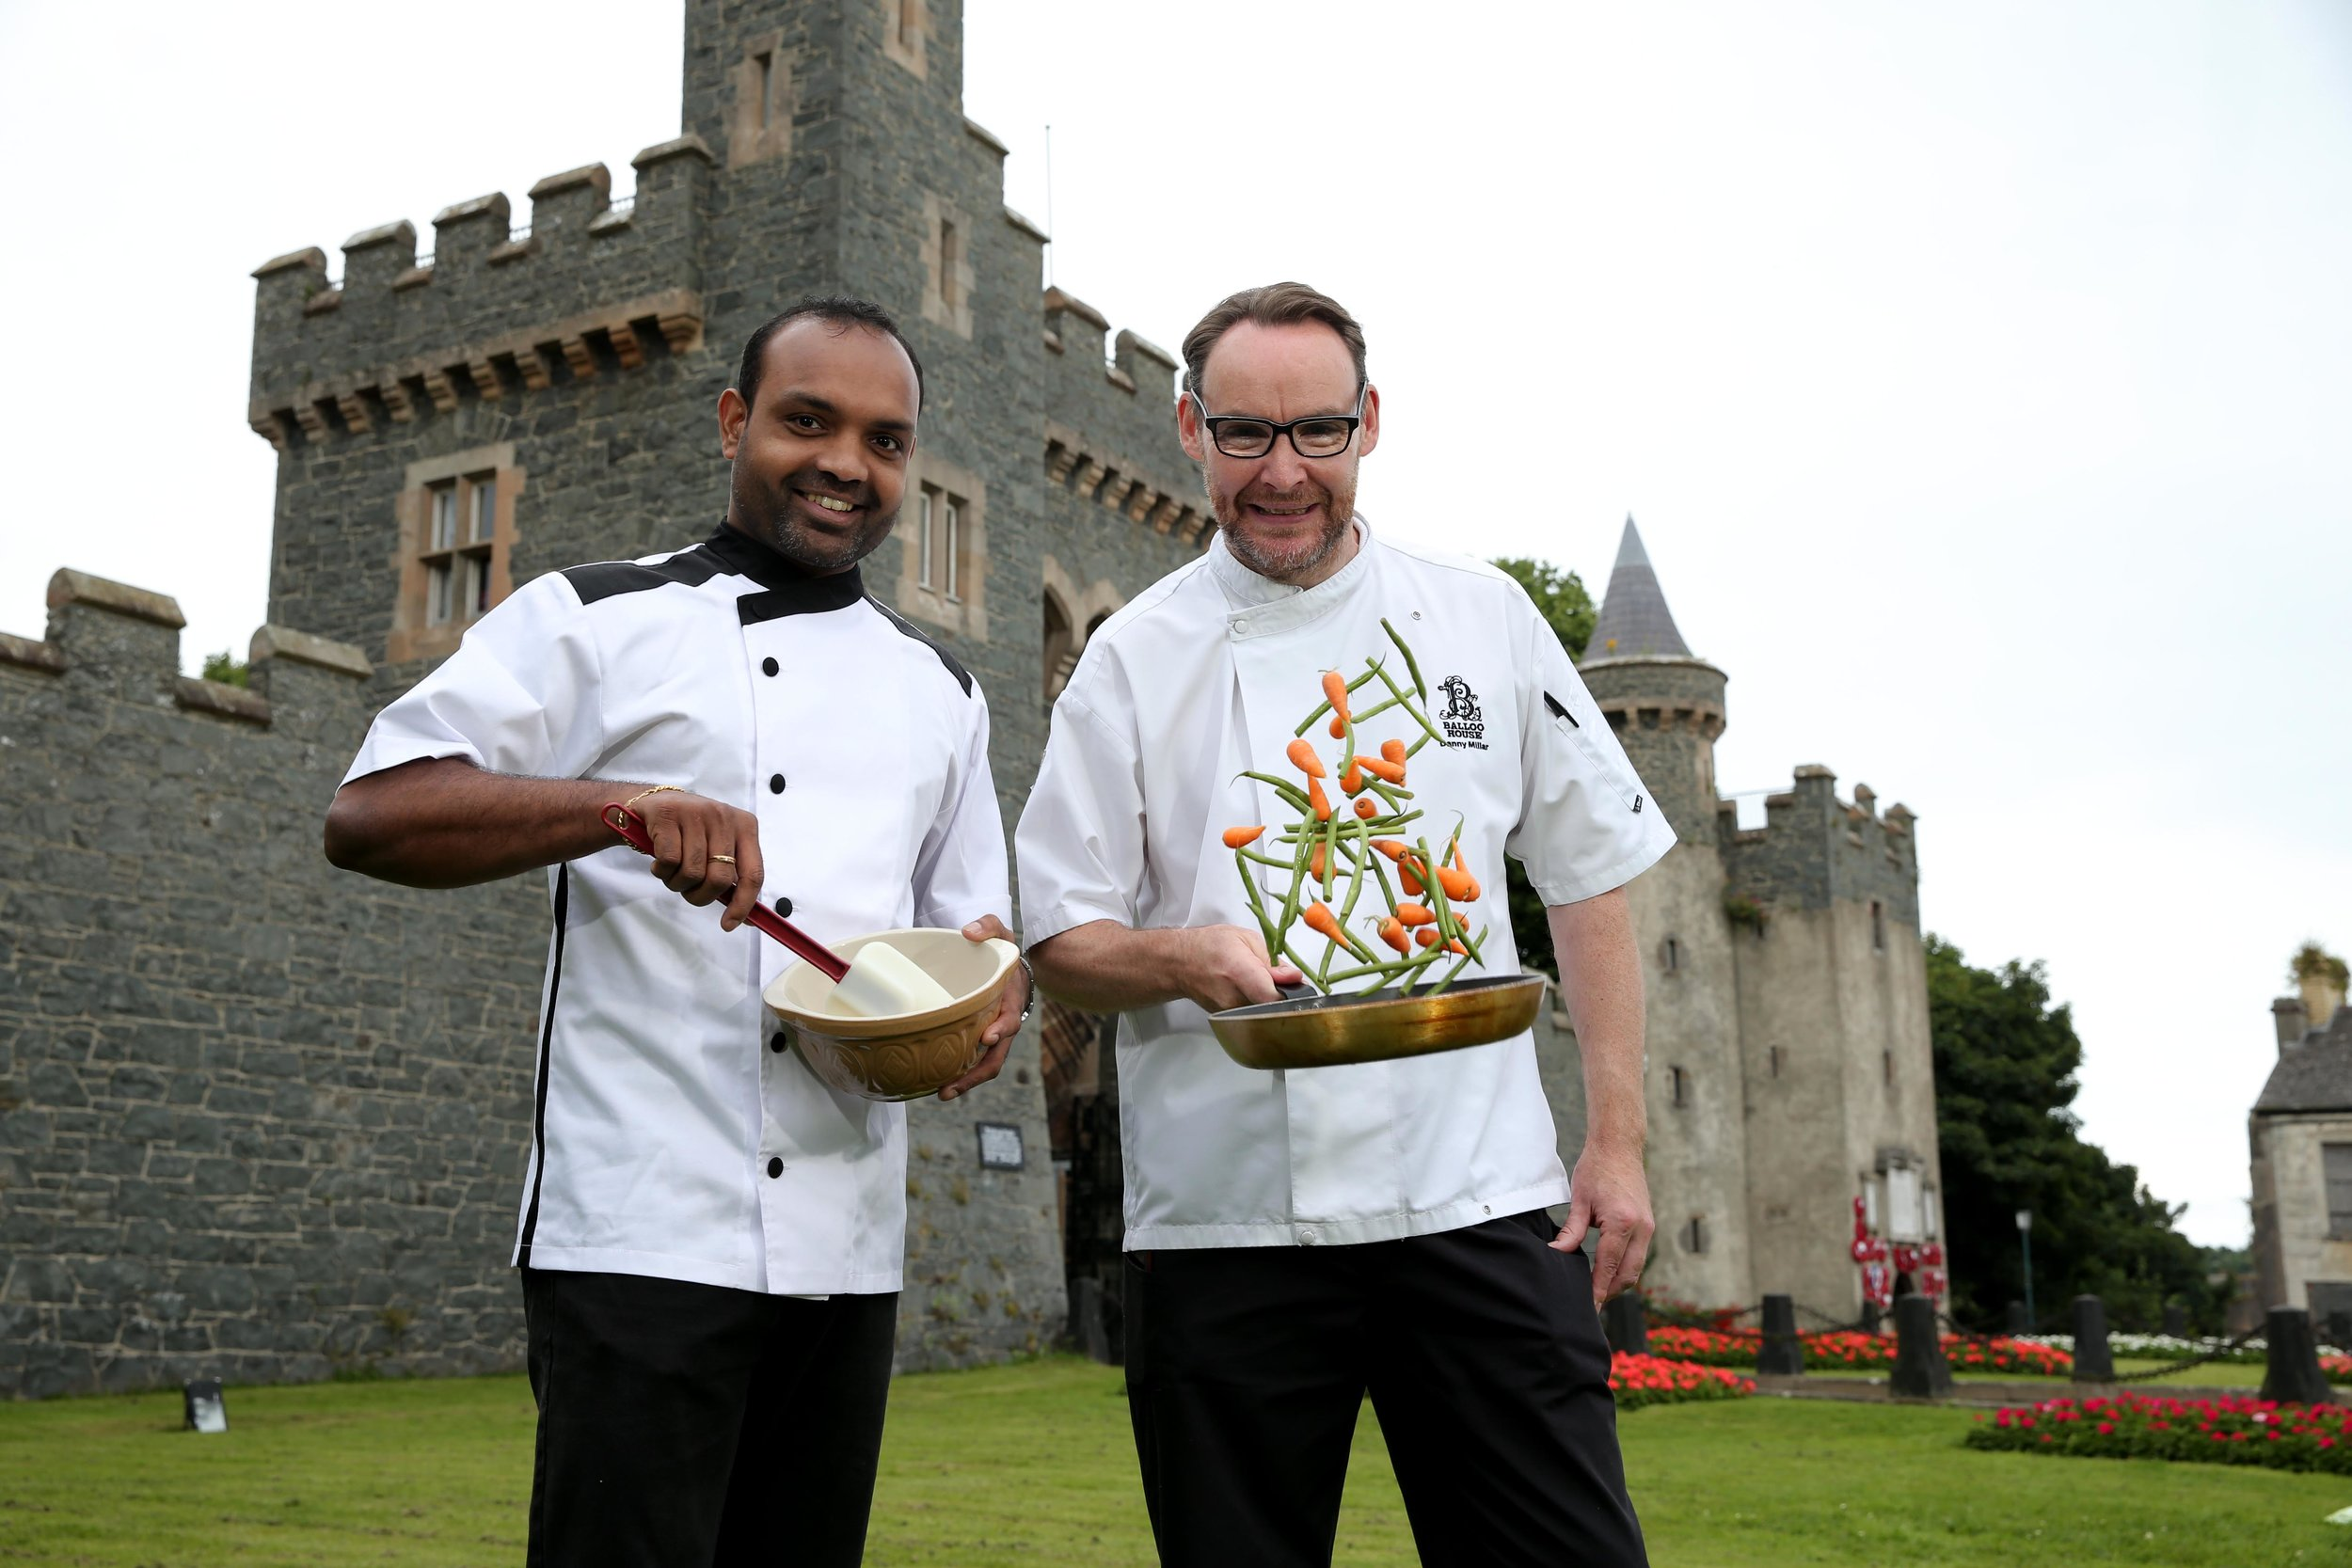 Chef Roy Abraham, The Smuggler's Table & Chef Danny Millar, The Poacher's Pocket